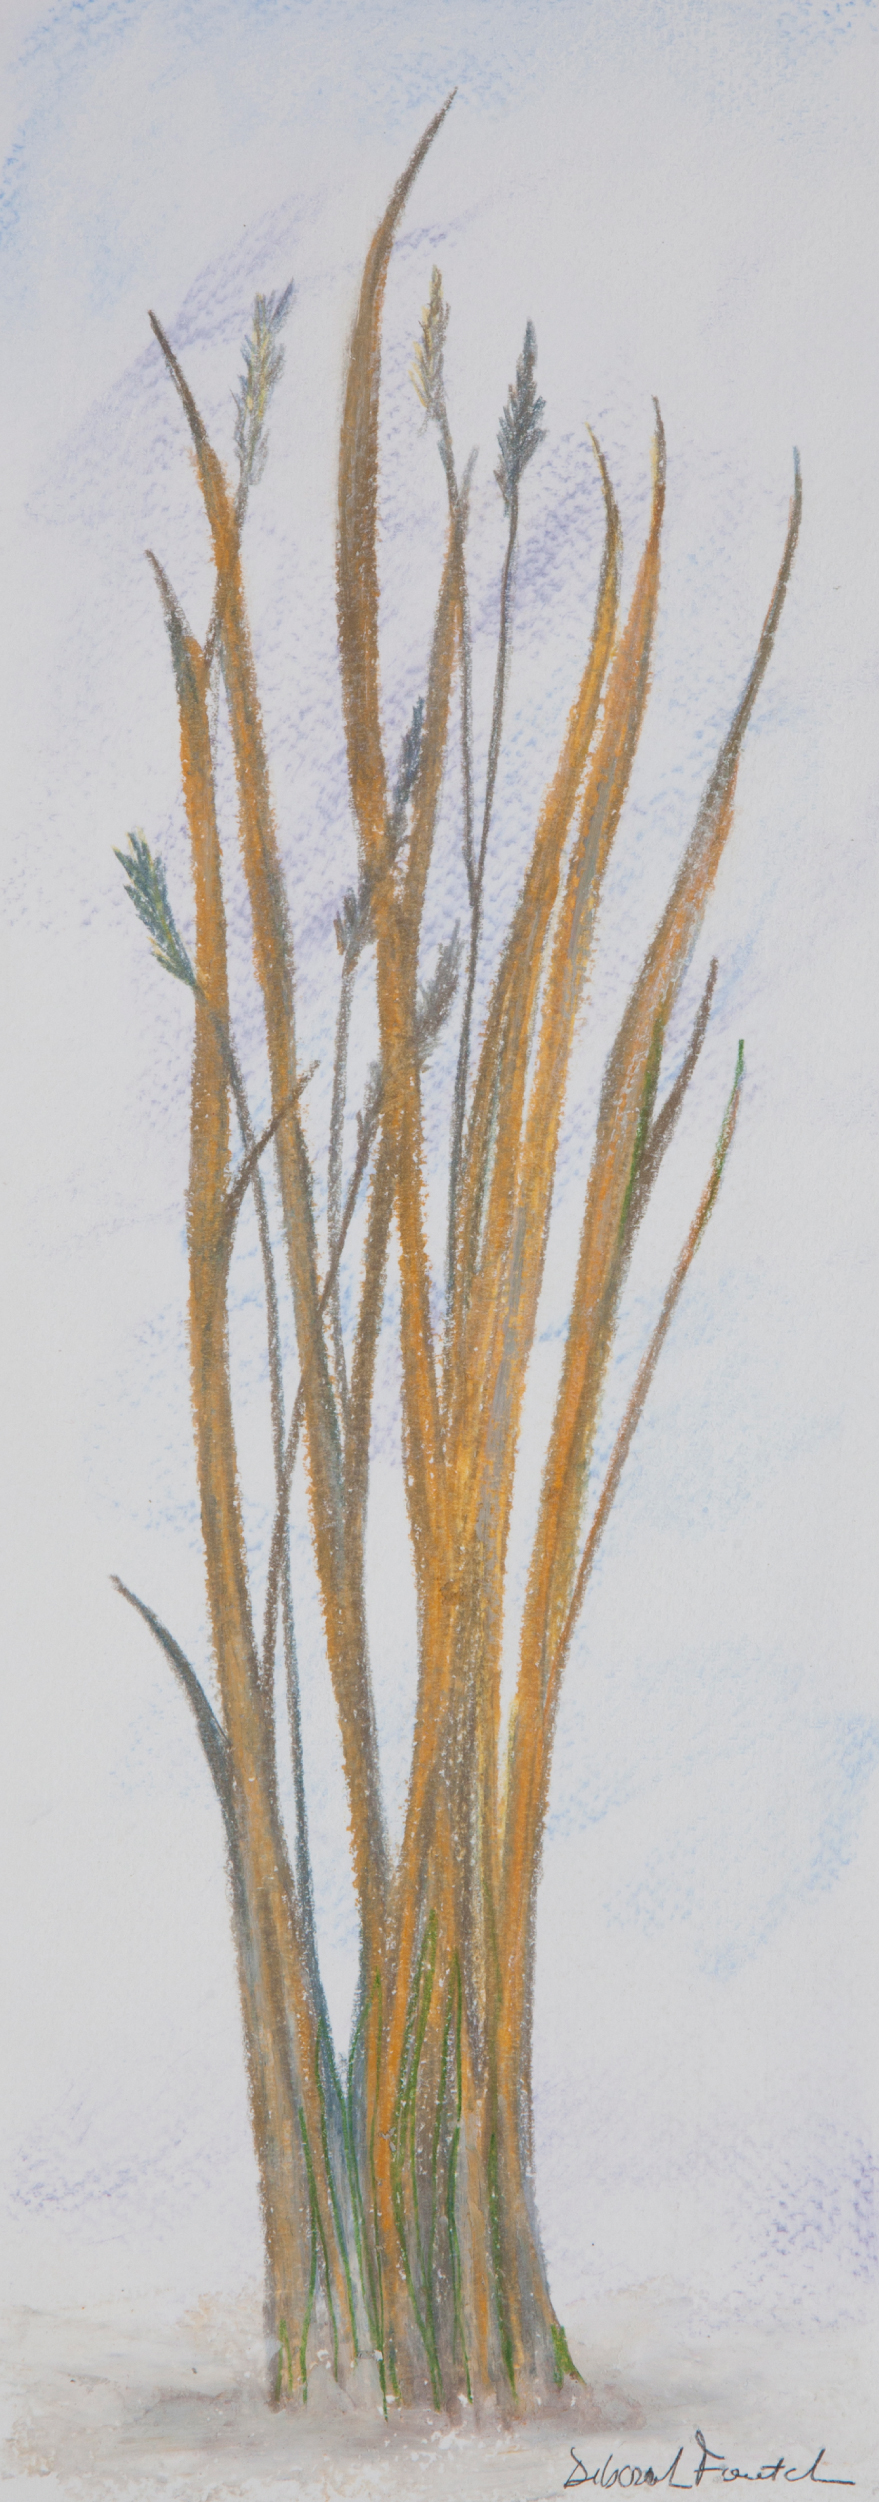 "Native Grasses, 14""x6"" drawing. A drawing  of native Minnesota grasses."